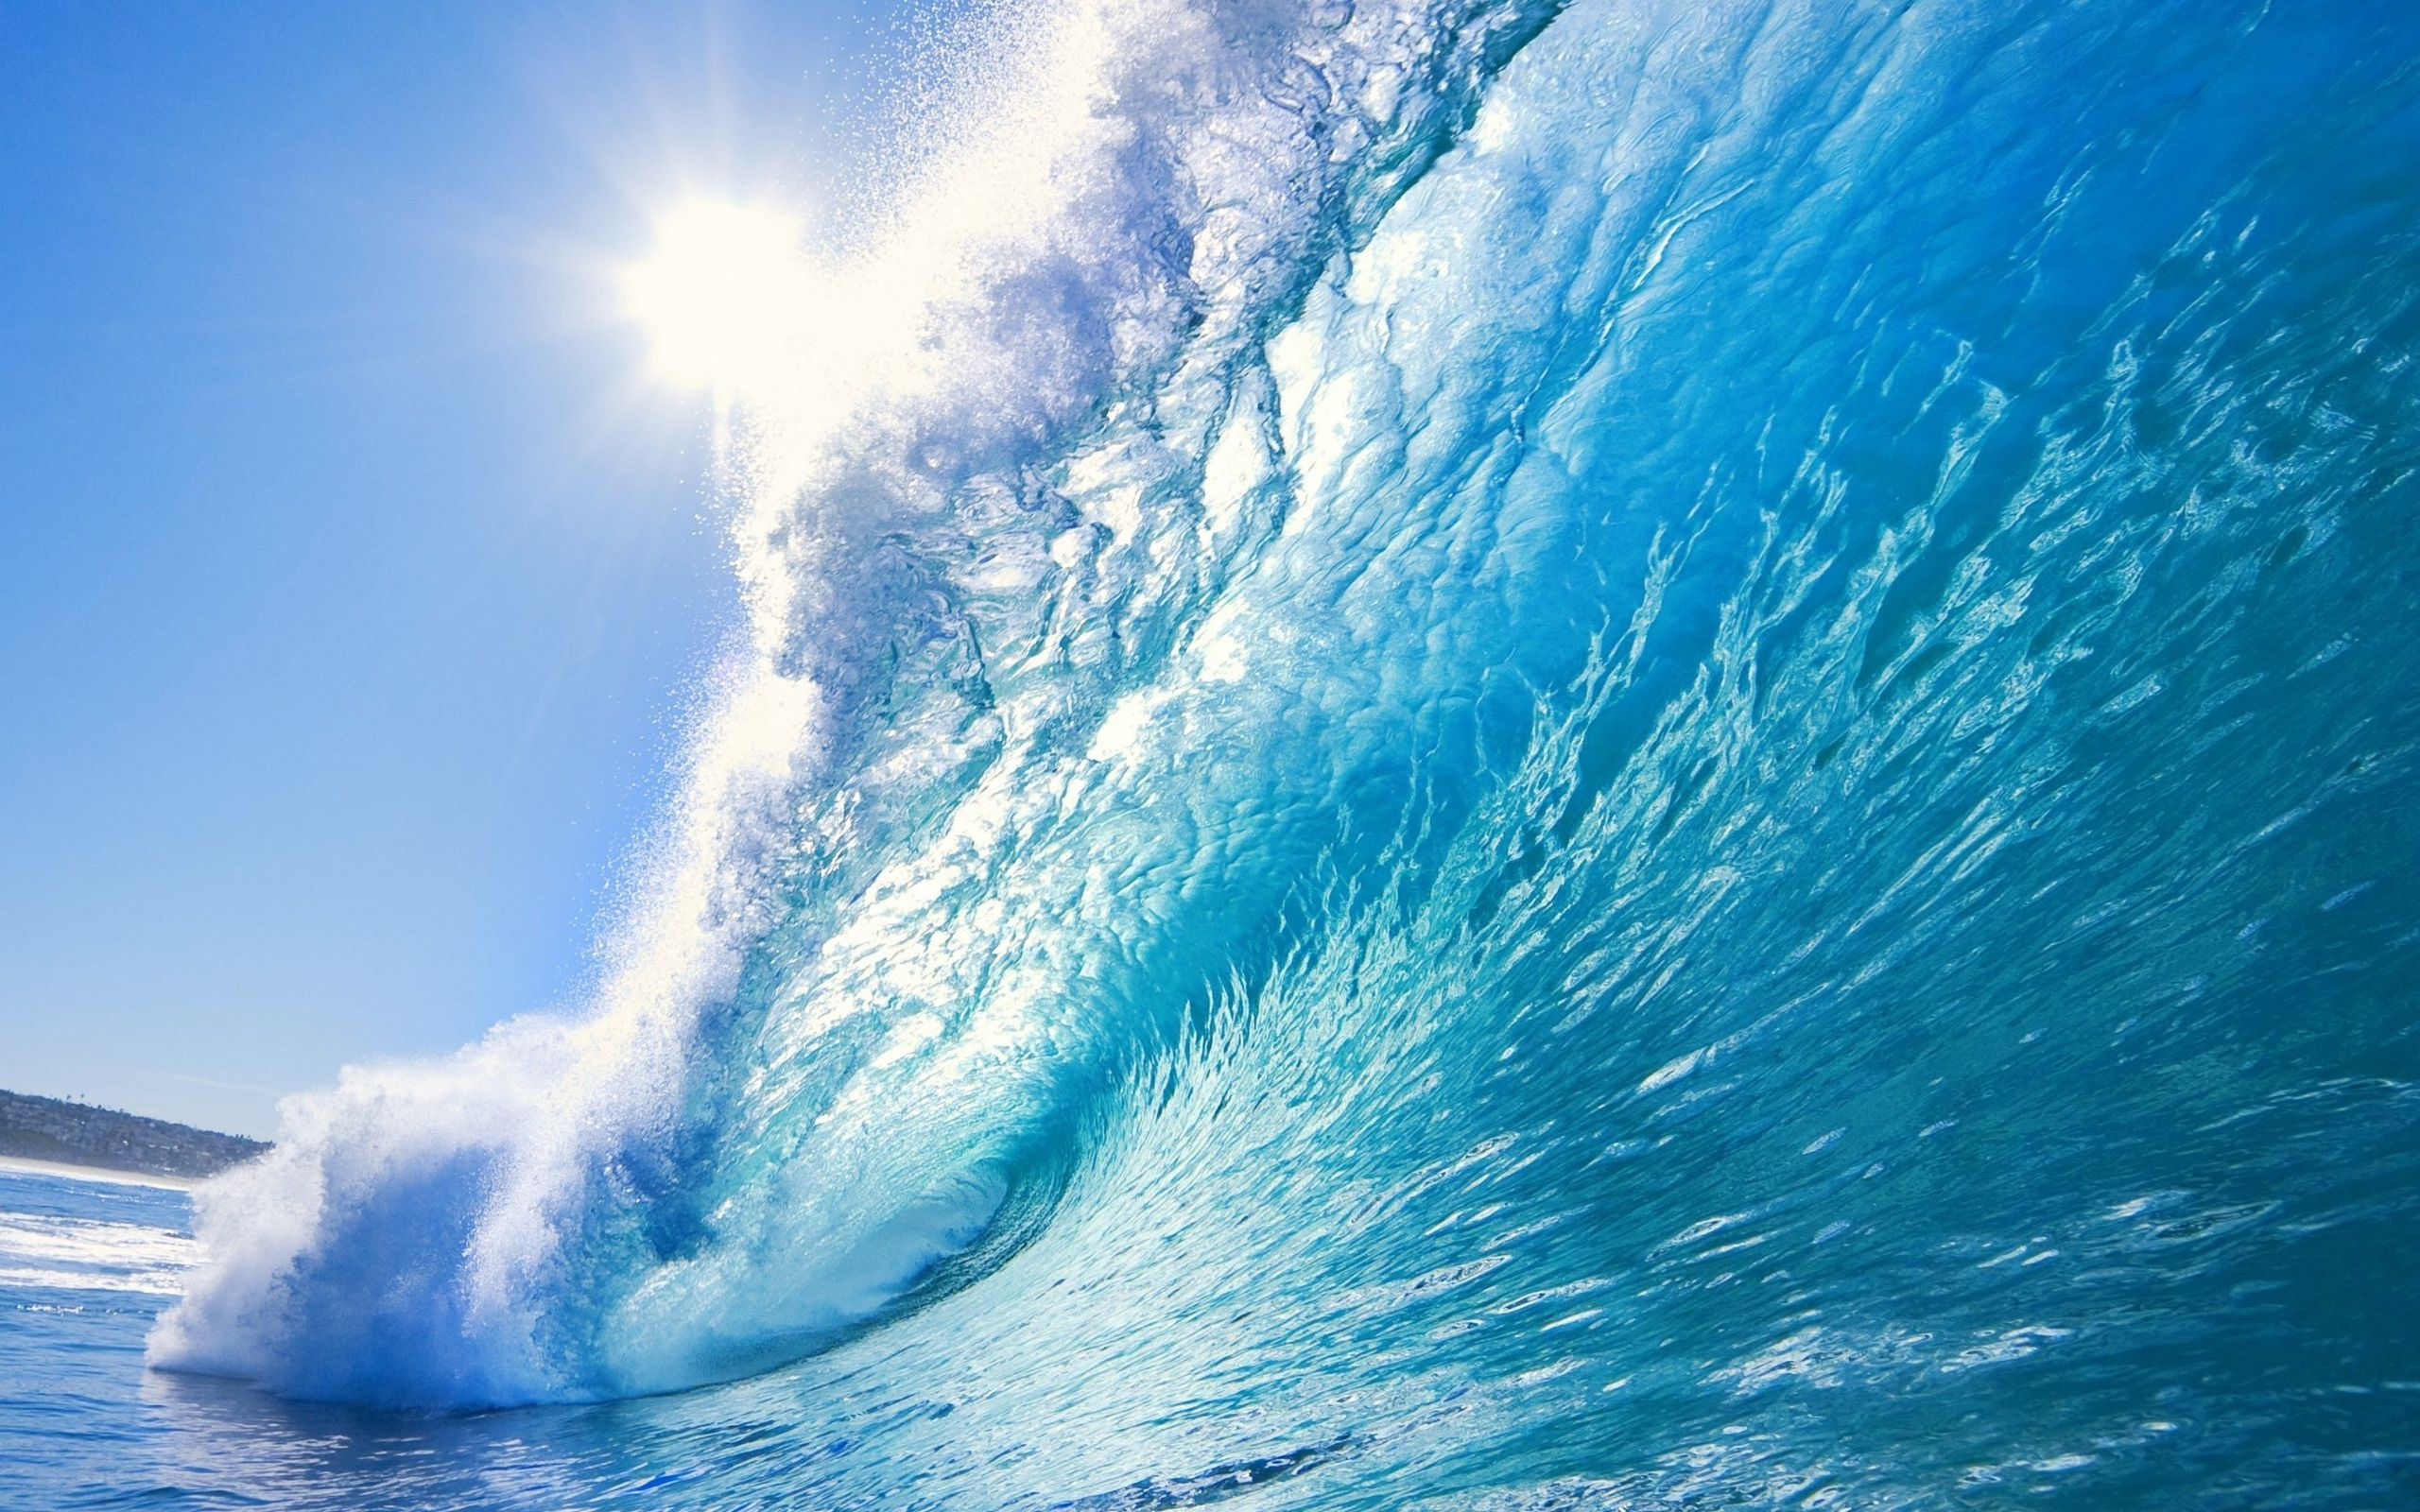 Ocean Waves Wallpapers